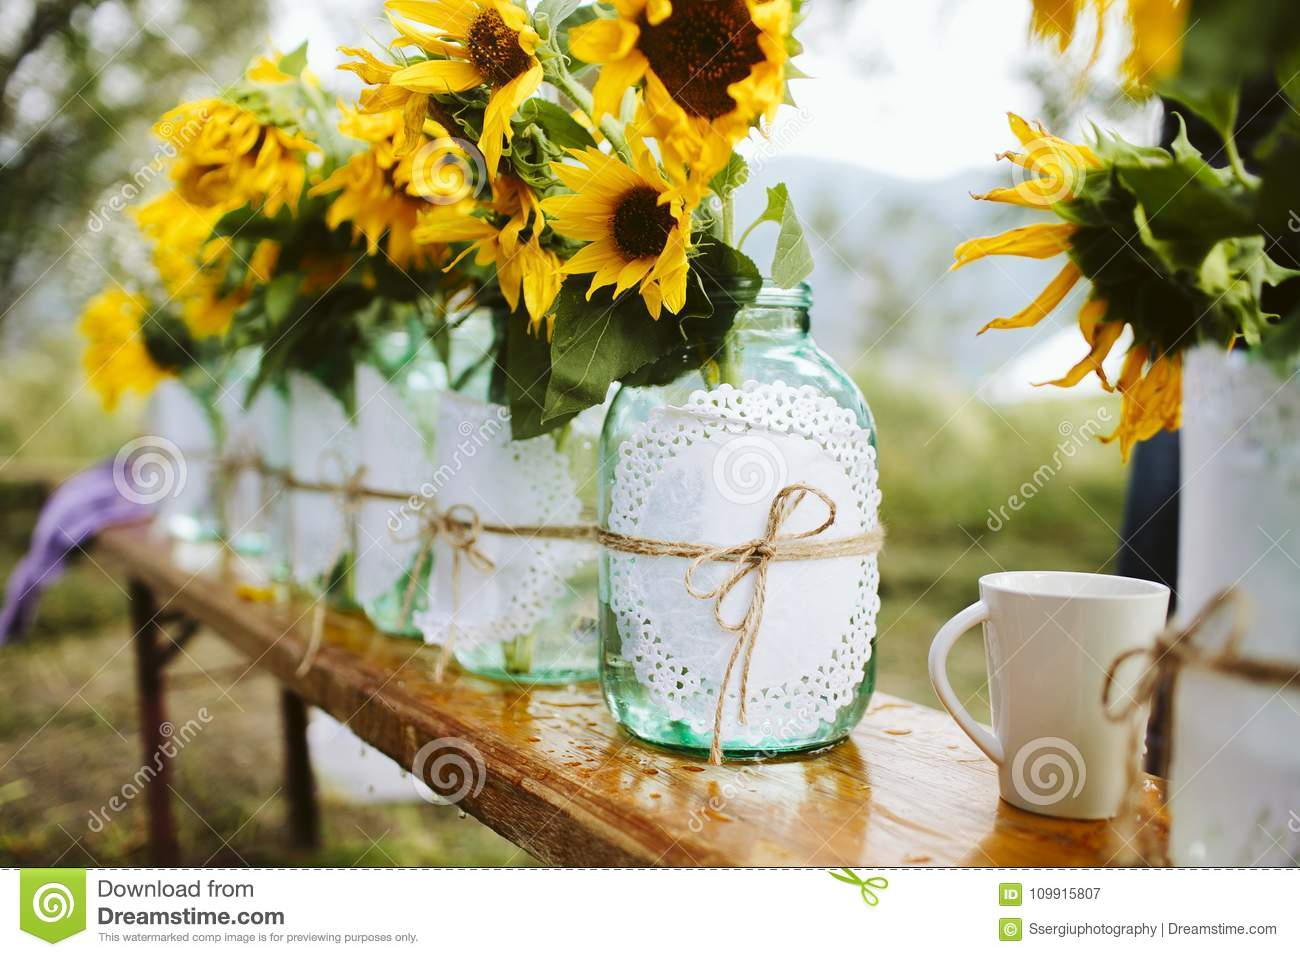 Wedding decoration details of sunflowers in mason jars stock image wedding decoration details of sunflowers in mason jars junglespirit Choice Image